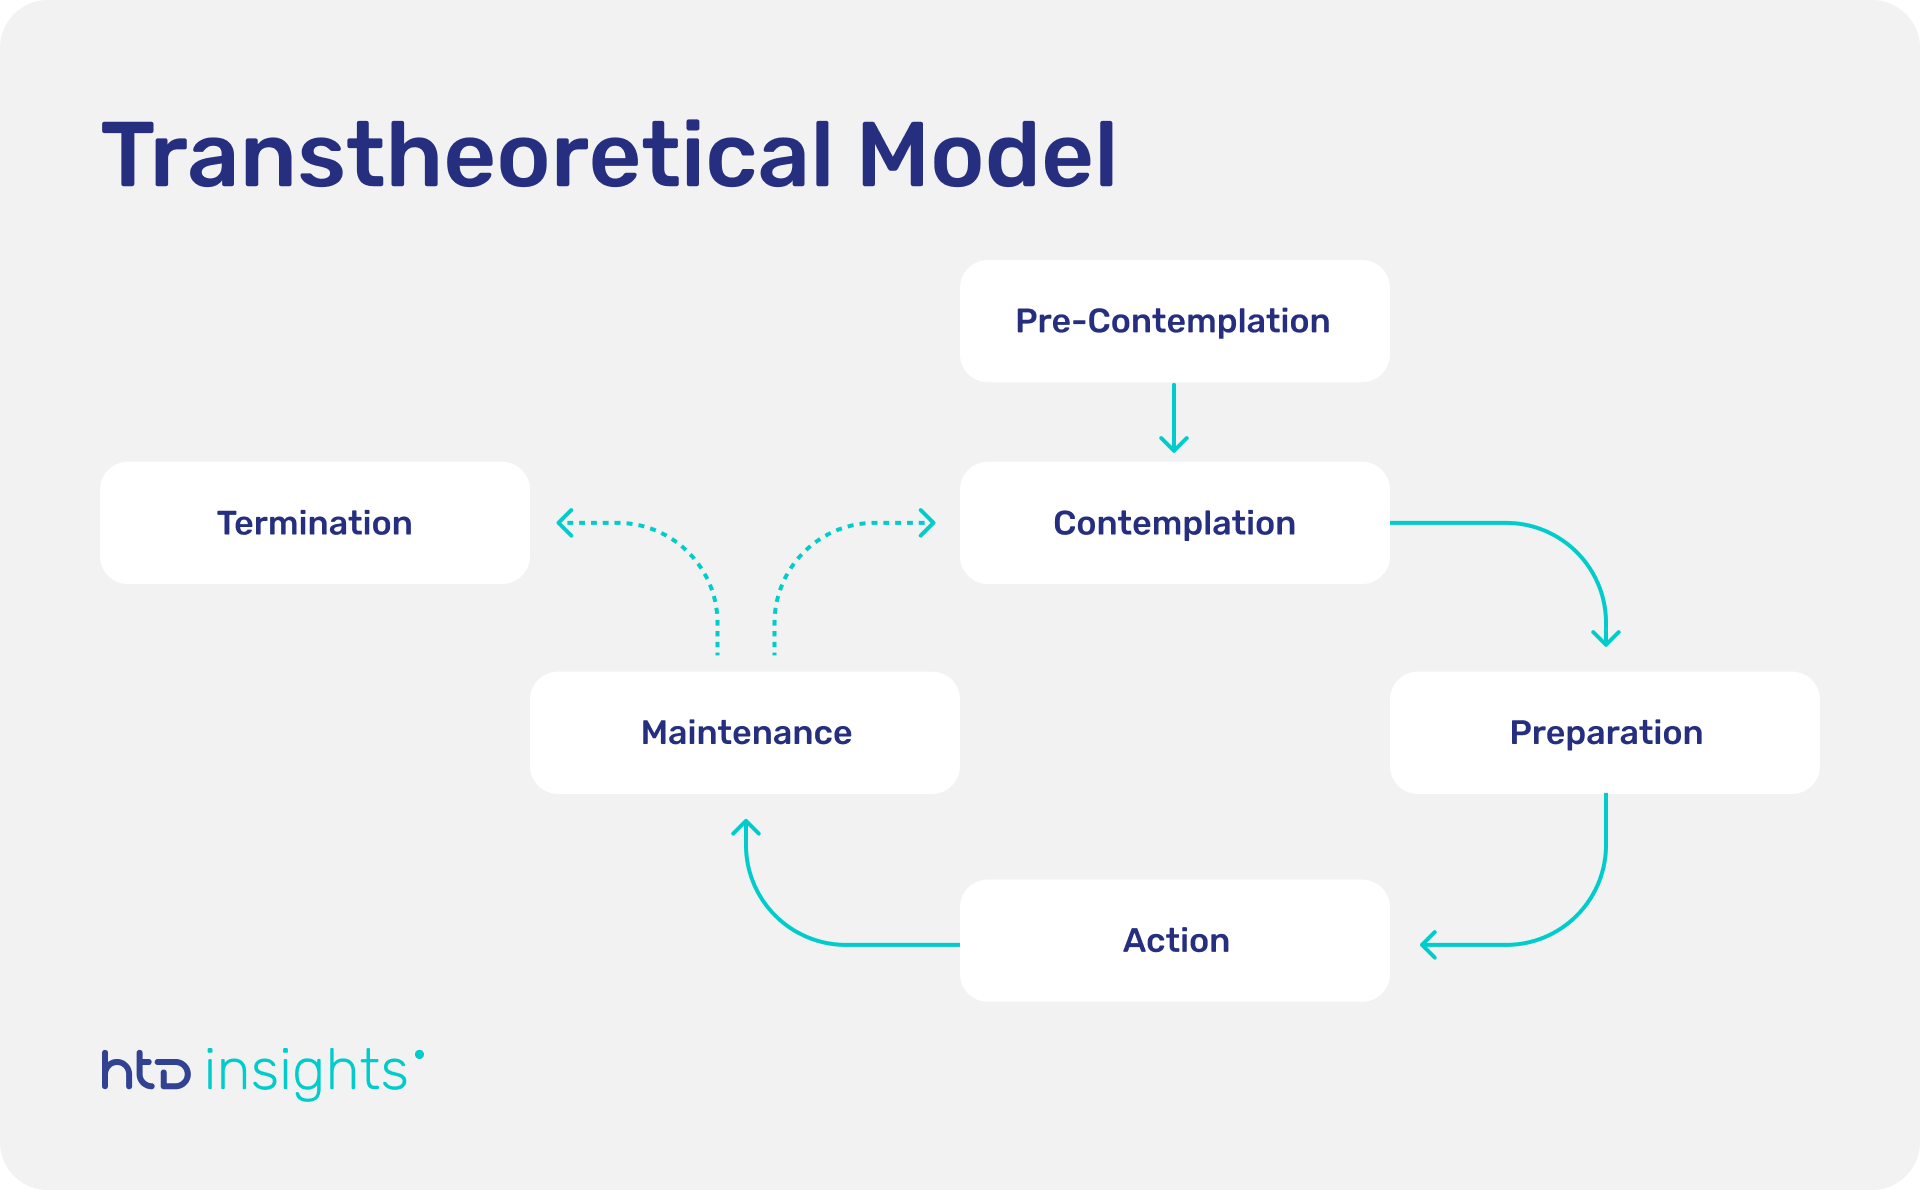 Schematic depicting six stages of the transtheoretical model